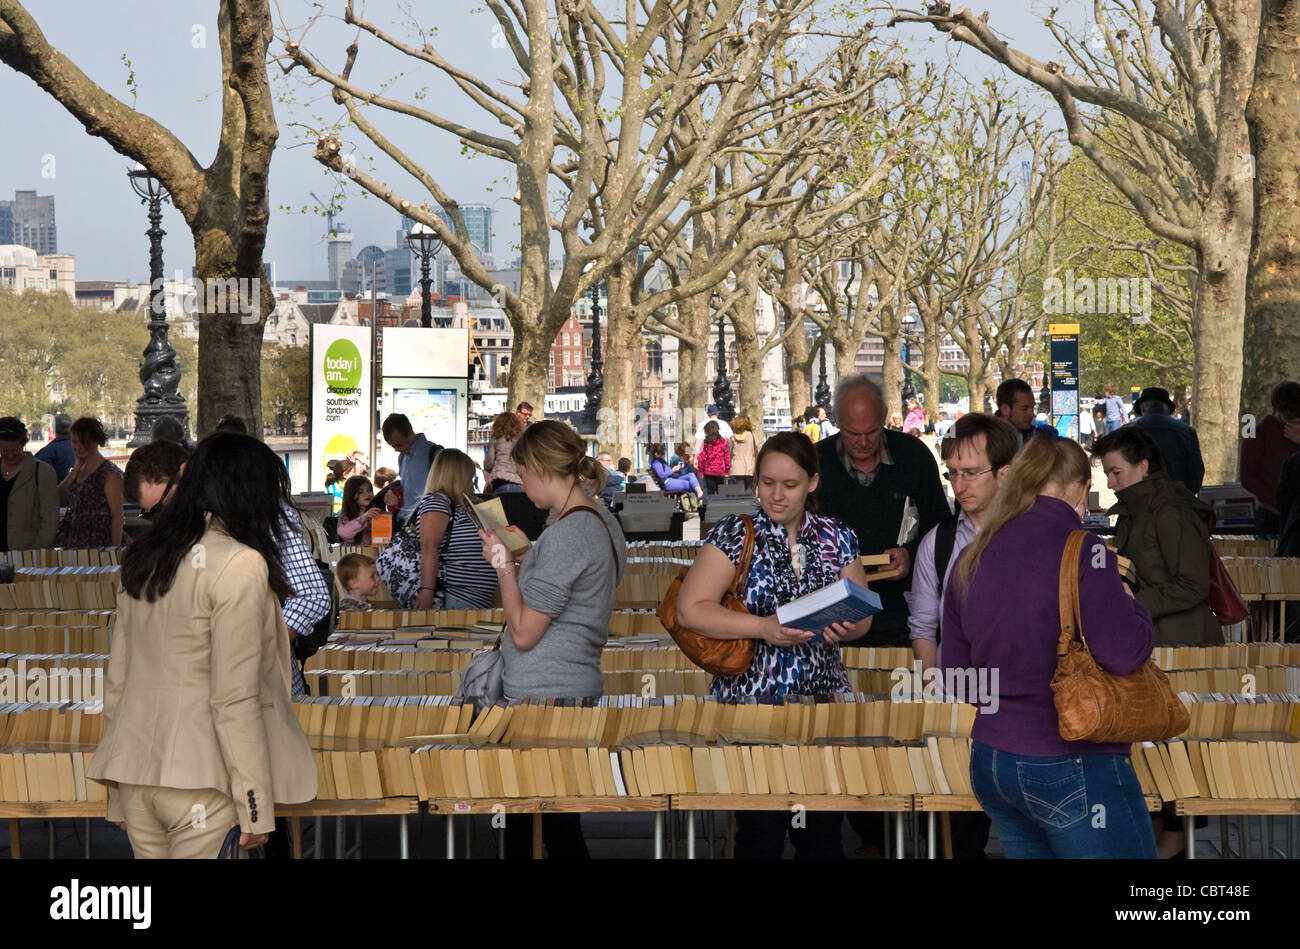 Secondhand book stalls, under Waterloo Bridge, on banks of the Thames, Southbank, London, England, UK - Stock Image